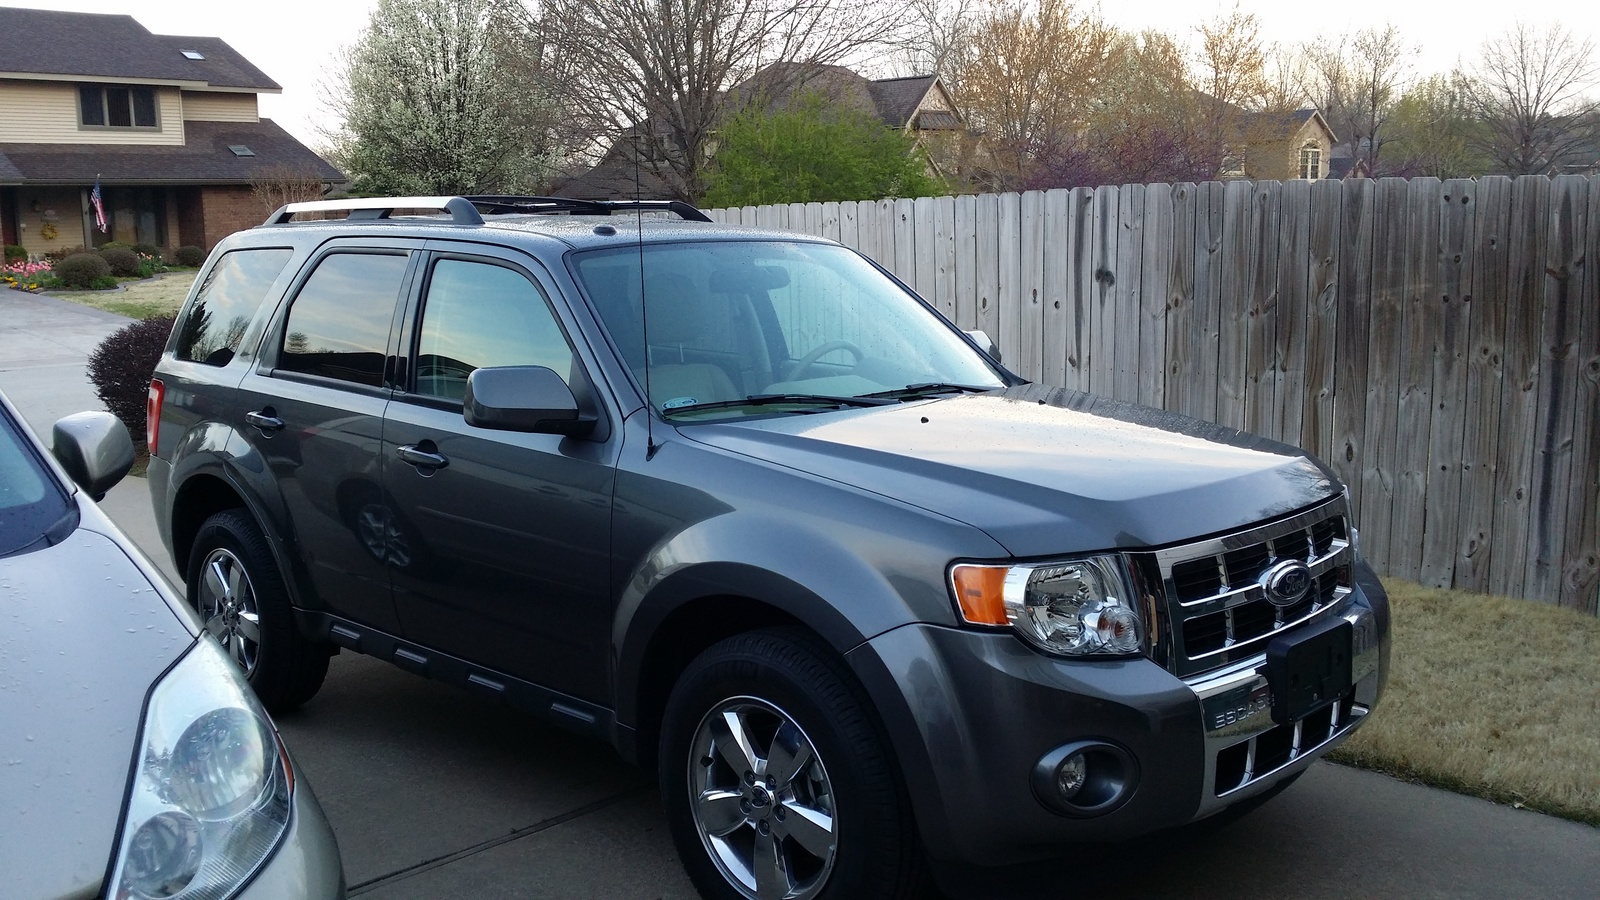 2012 ford escape limited 4wd picture exterior. Cars Review. Best American Auto & Cars Review